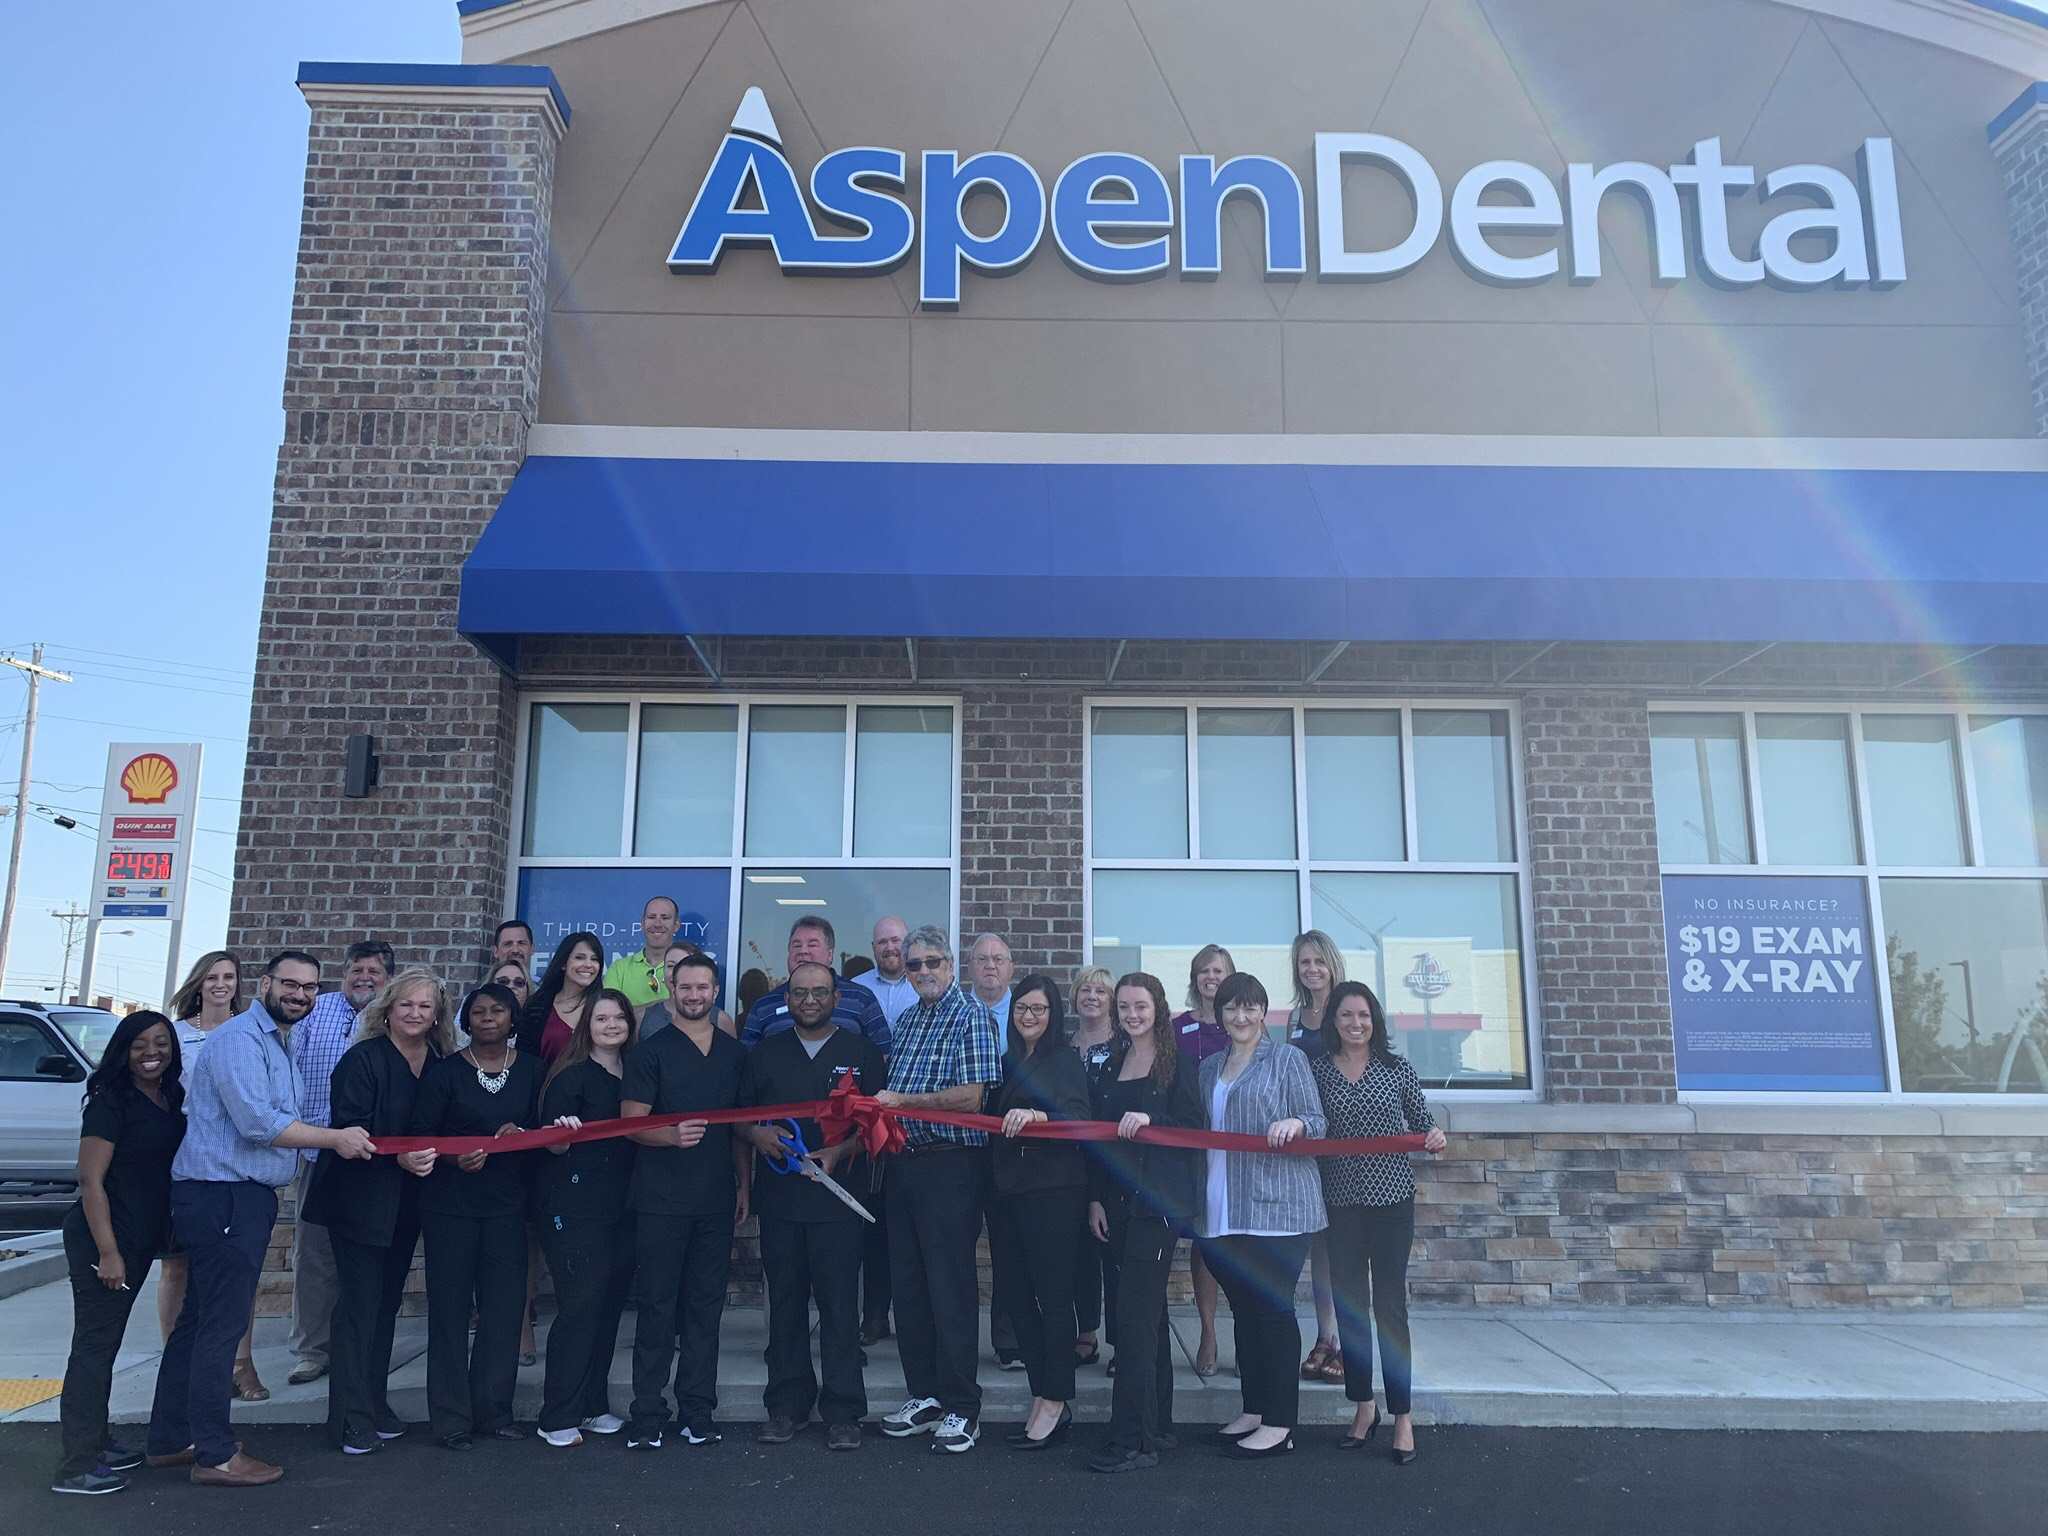 Aspen Dental in Spring Hill holds grand opening ceremony, announces free care for veterans on Sept. 7